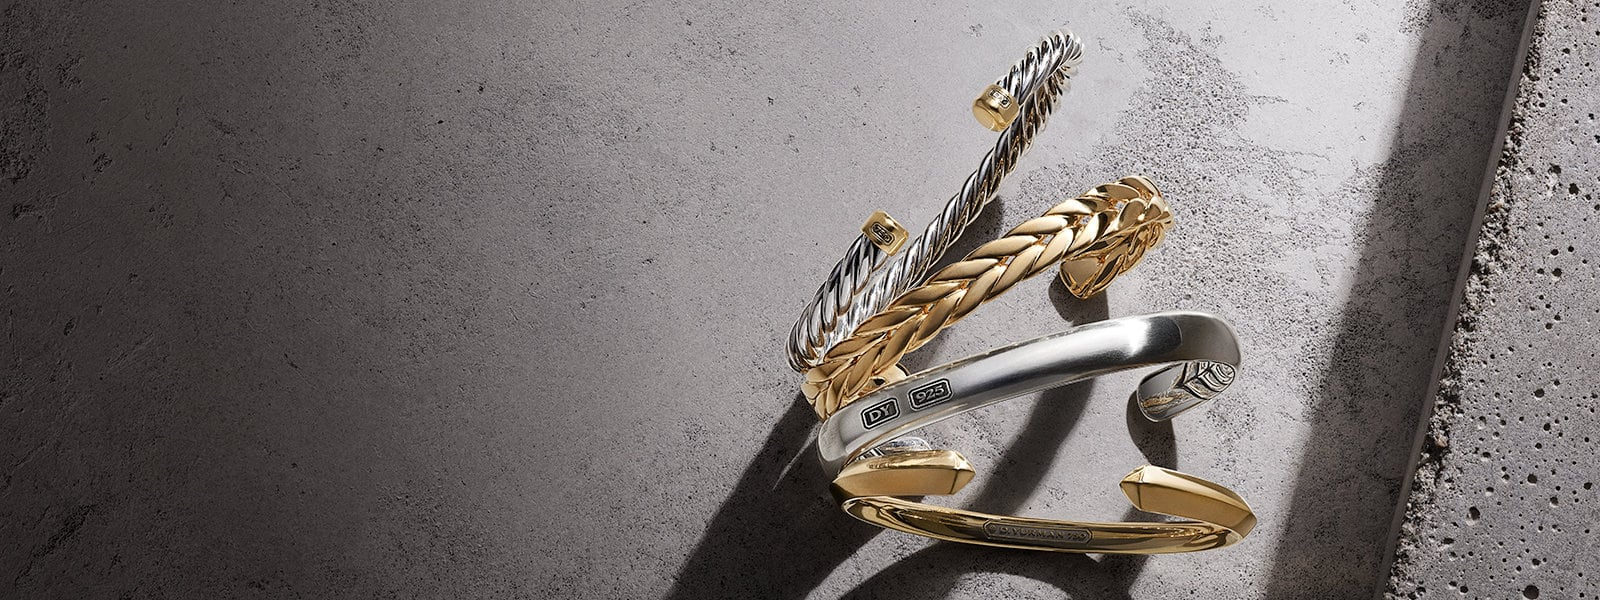 An angled stack of David Yurman The Cable Collection®, Chevron, Streamline® and Roman cuffs in sterling silver, 18K yellow gold or mixed-metals, standing up on a grey textured stone and casting long shadows.